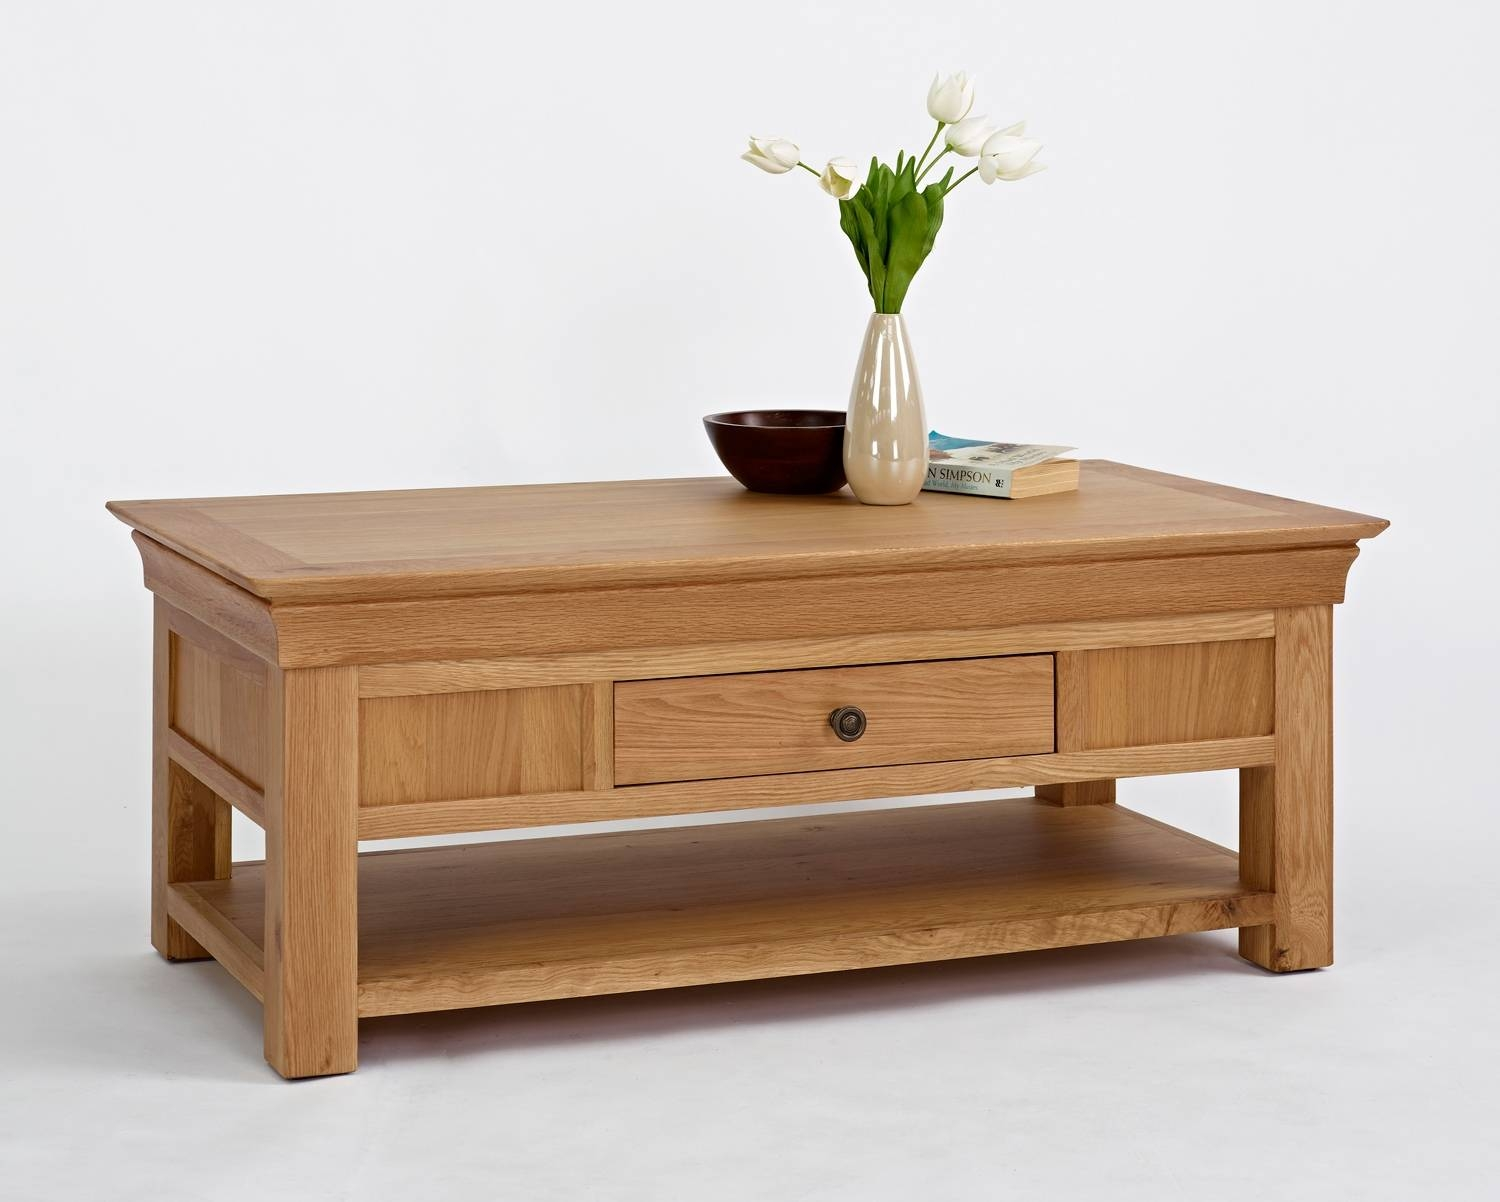 Oak Coffee Tables + Other Living Room Furniture - Oak Furniture with regard to Oak Veneer Coffee Tables (Image 11 of 15)